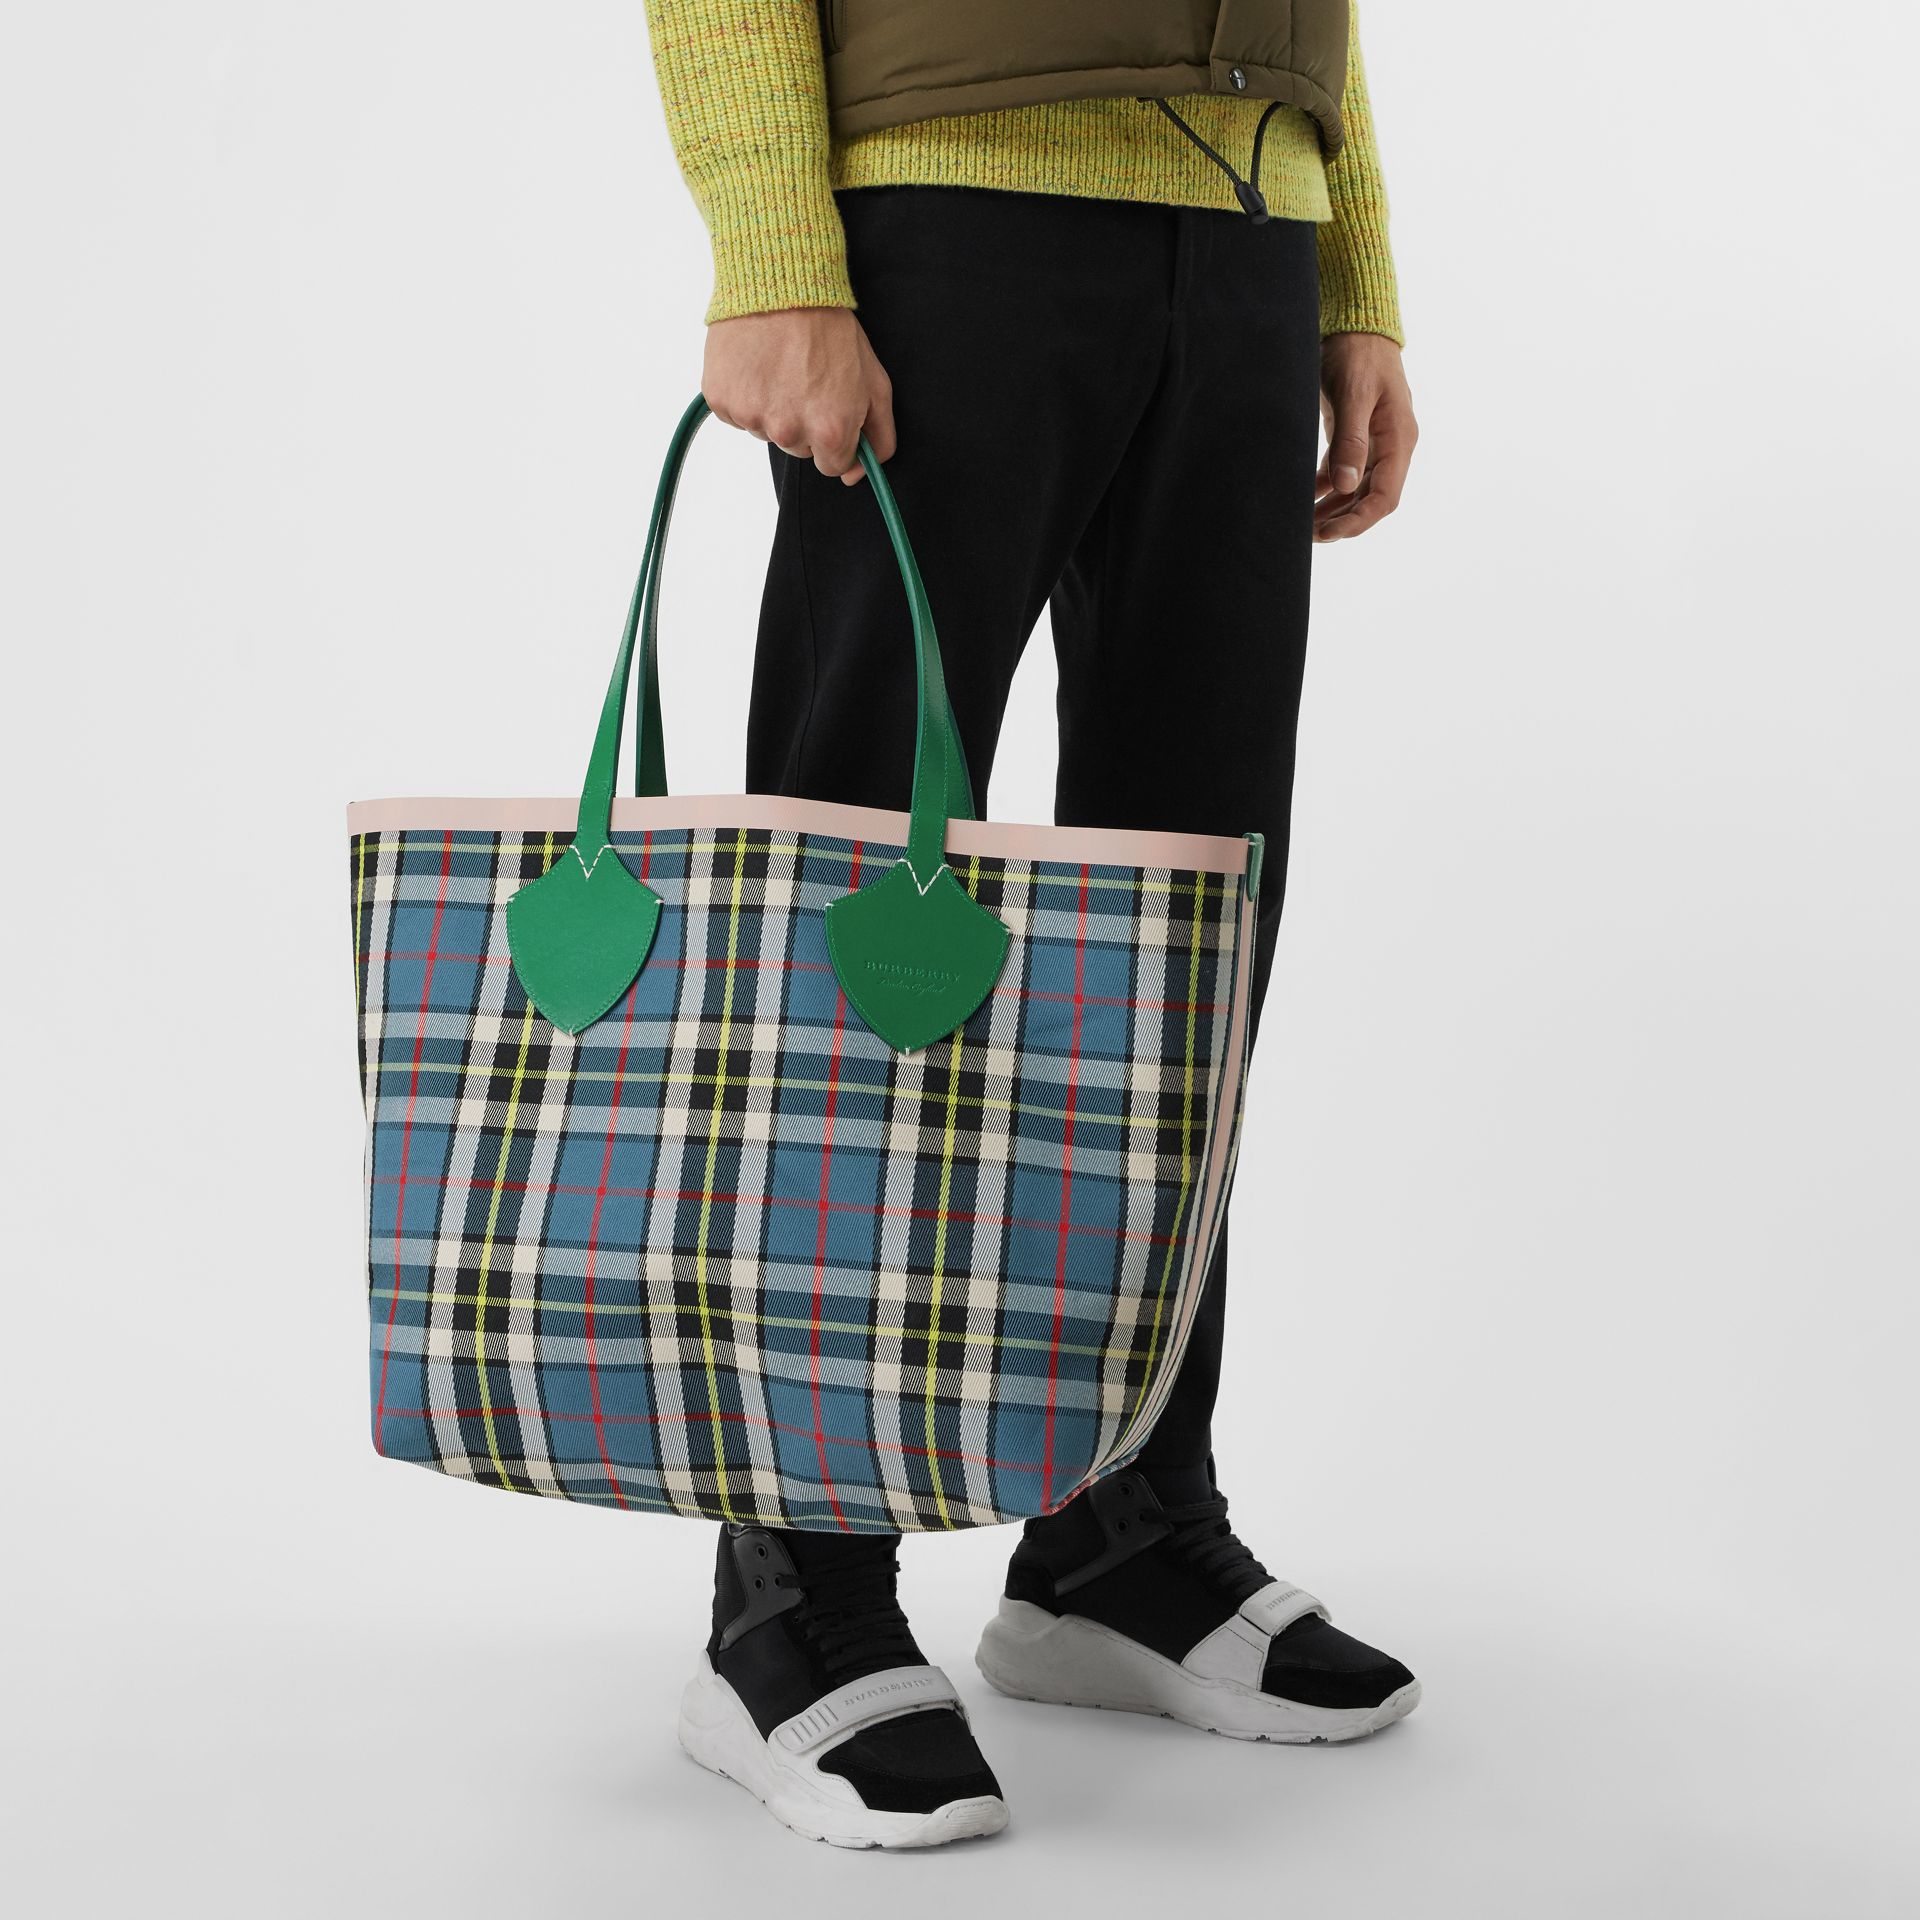 Sac tote The Giant réversible à motif Vintage check (Vert Sombre/abricot Rose) - Femme | Burberry Canada - photo de la galerie 7